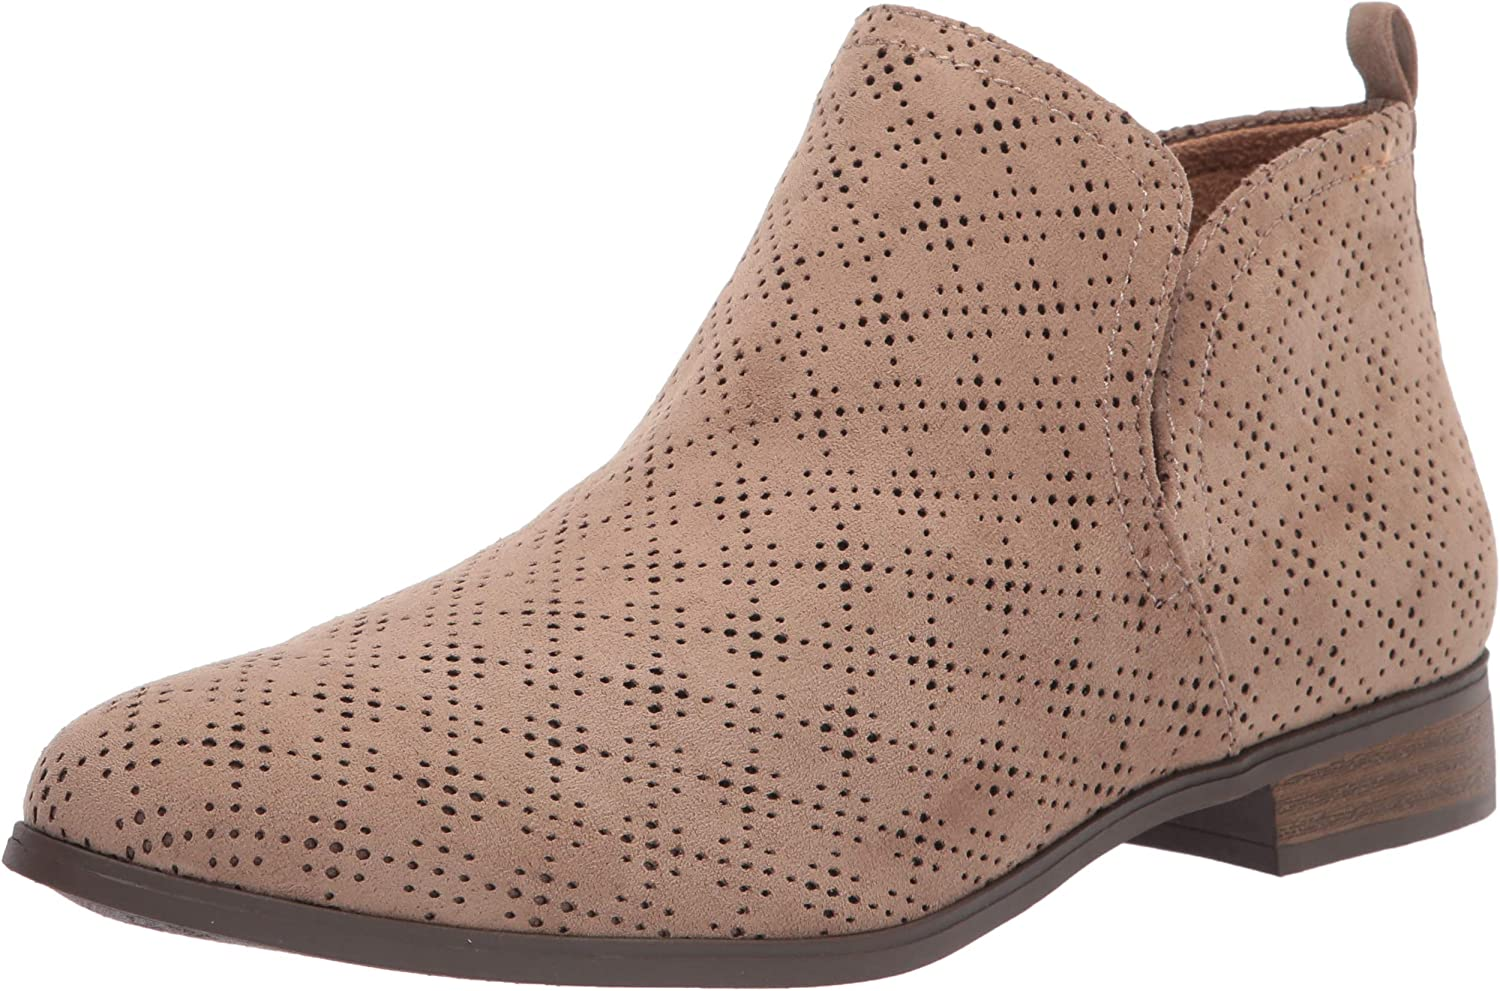 Dr. Scholl's Shoes Women's Rate Ankle Ranking integrated Ranking TOP12 1st place Boot